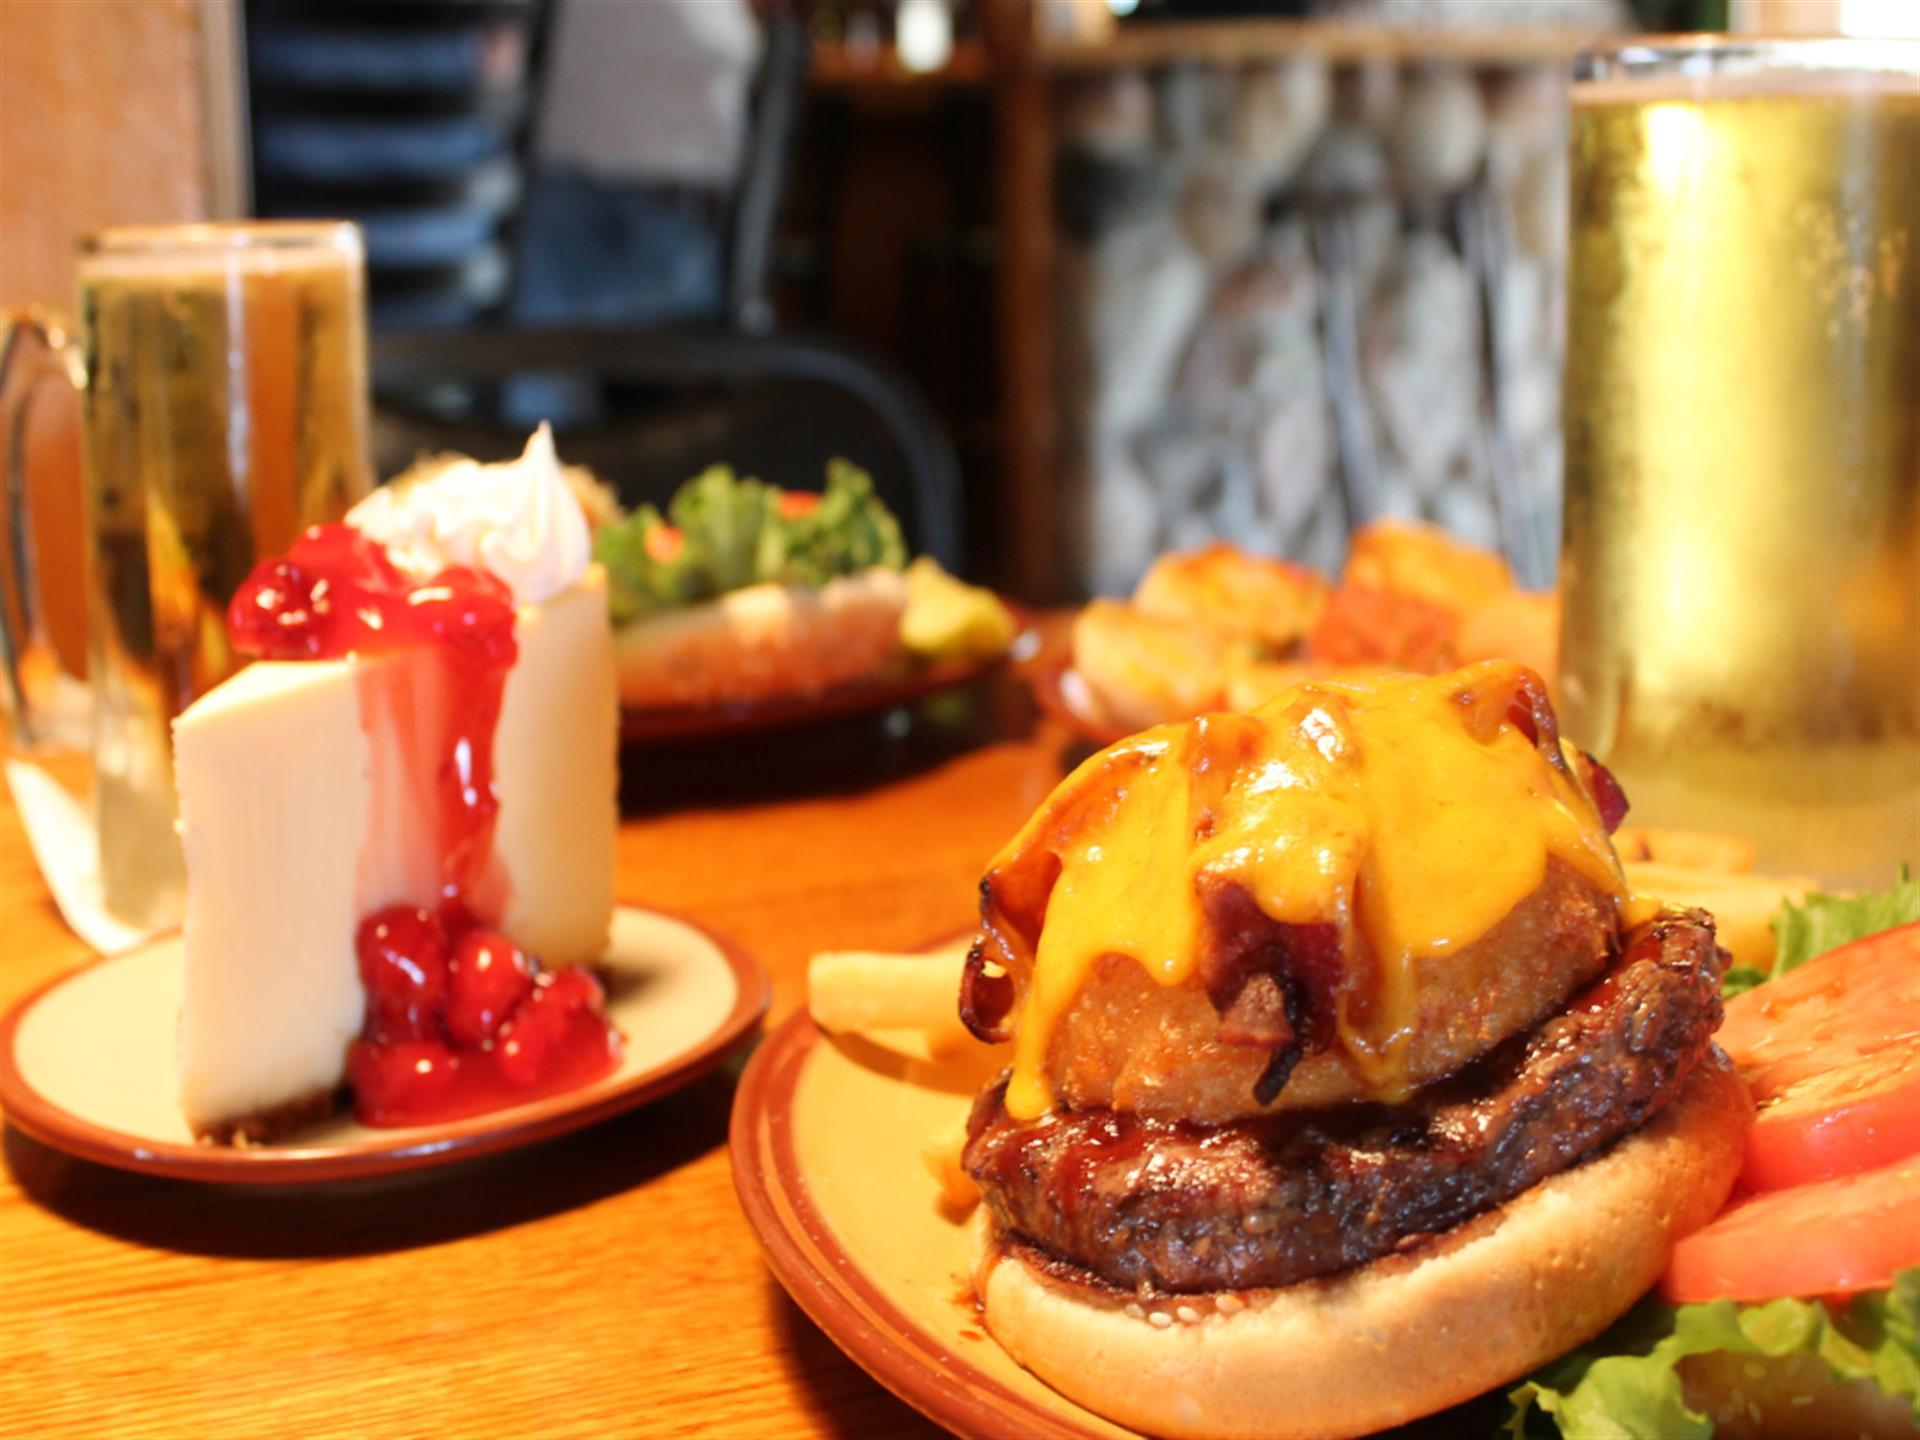 close-up view of cheeseburger with lettuce, tomato, fries, onion rings, two mugs of beer and cheesecake on a table